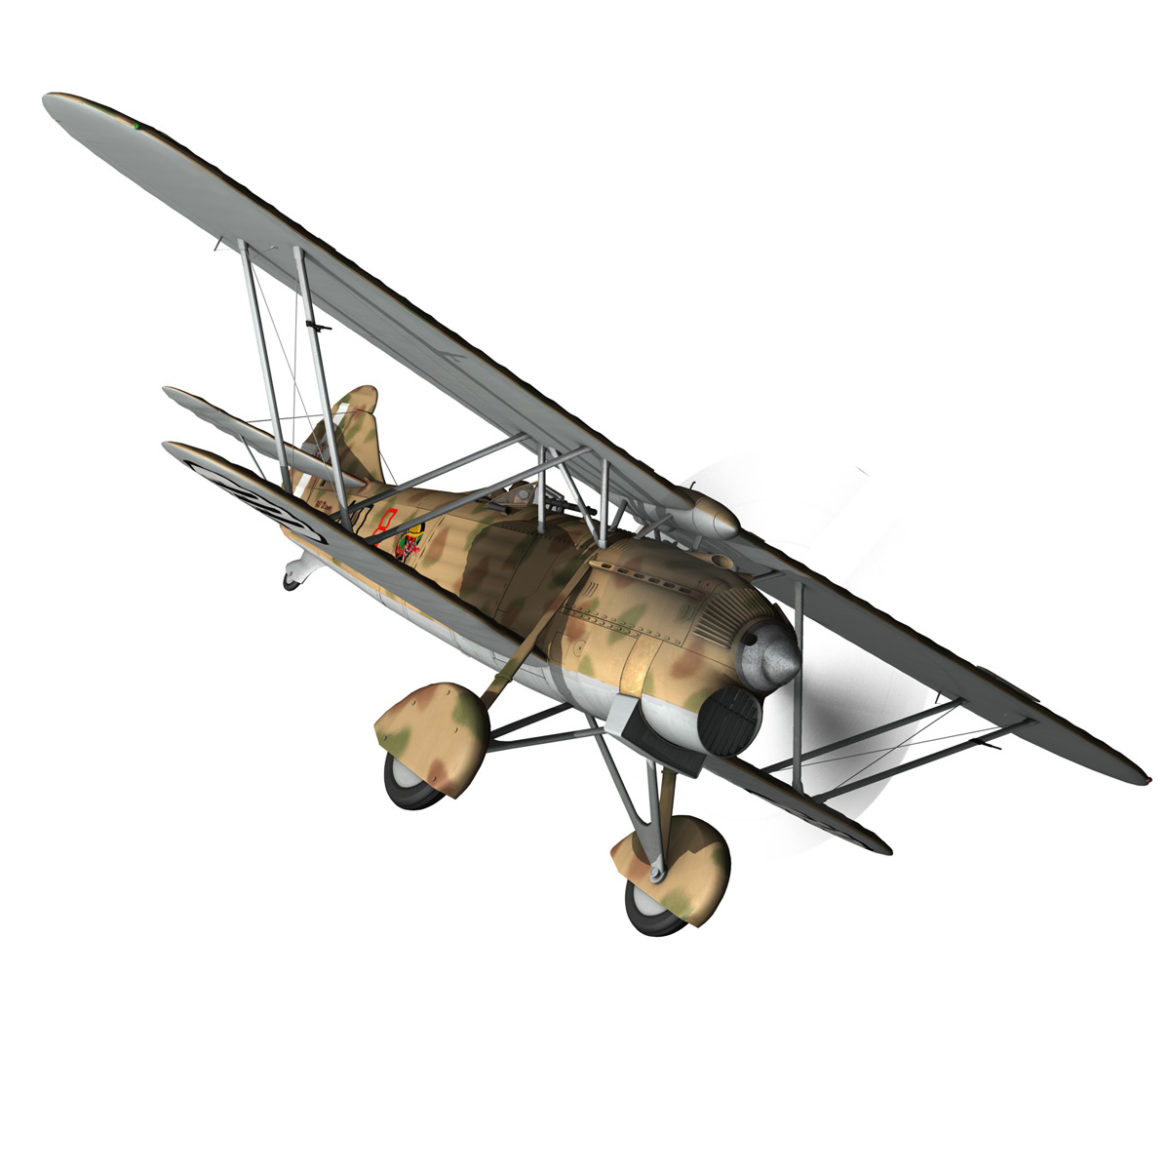 fiat cr.32 – italy airforce – 410 squadriglia 3d model fbx c4d lwo obj 307548